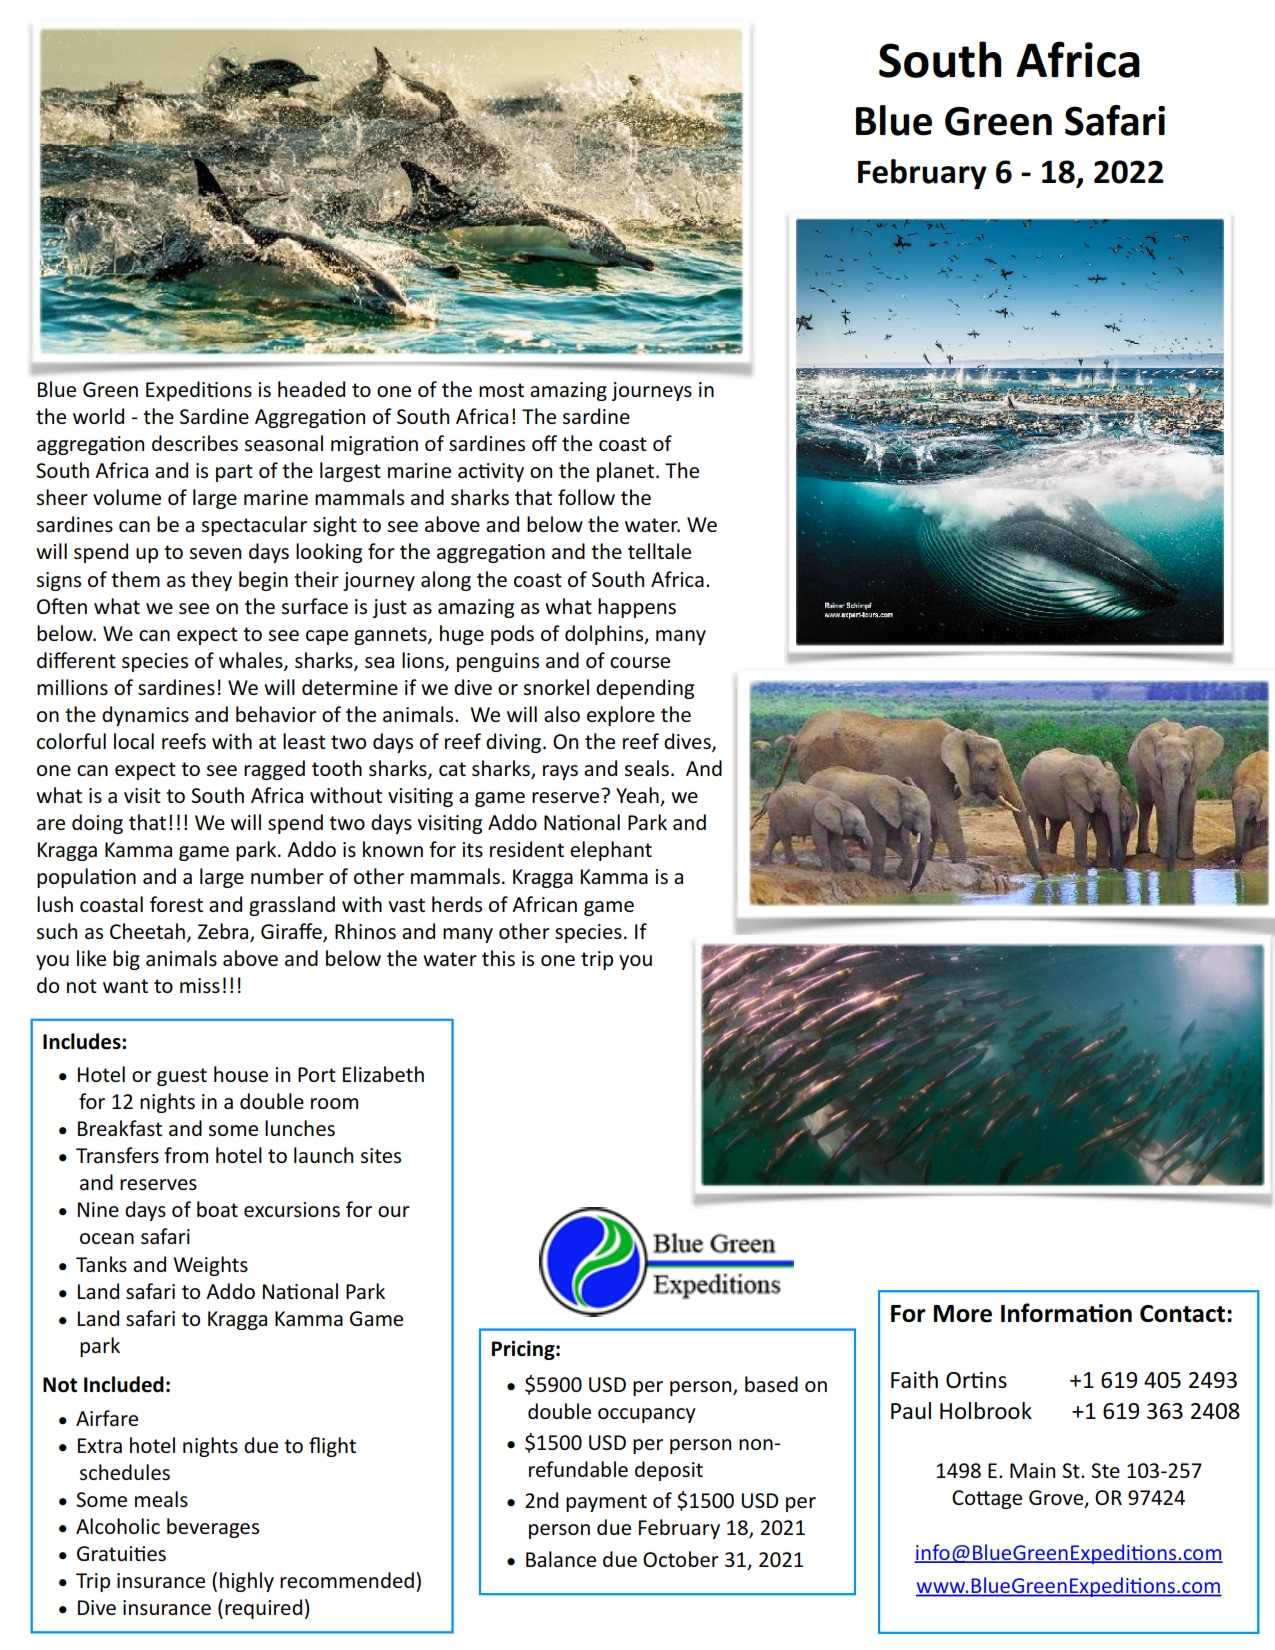 South Africa Sardine Run Expedition, February 6 - 18, 2022. Expedition description and pricing. PDF flyer contains the same information.